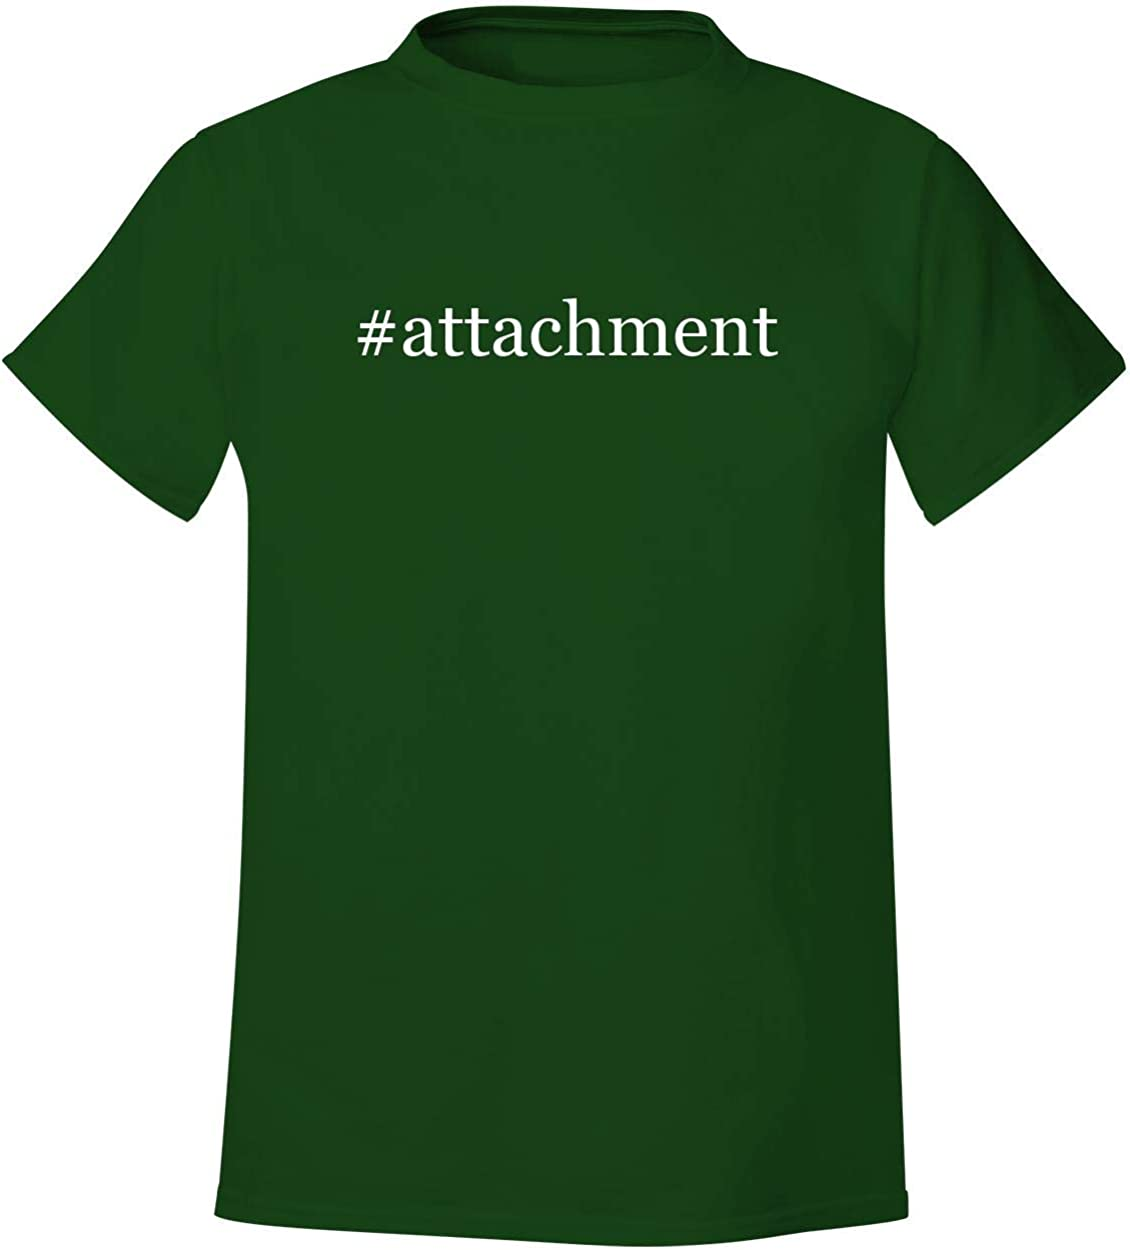 #attachment - Men's Hashtag Soft & Comfortable T-Shirt